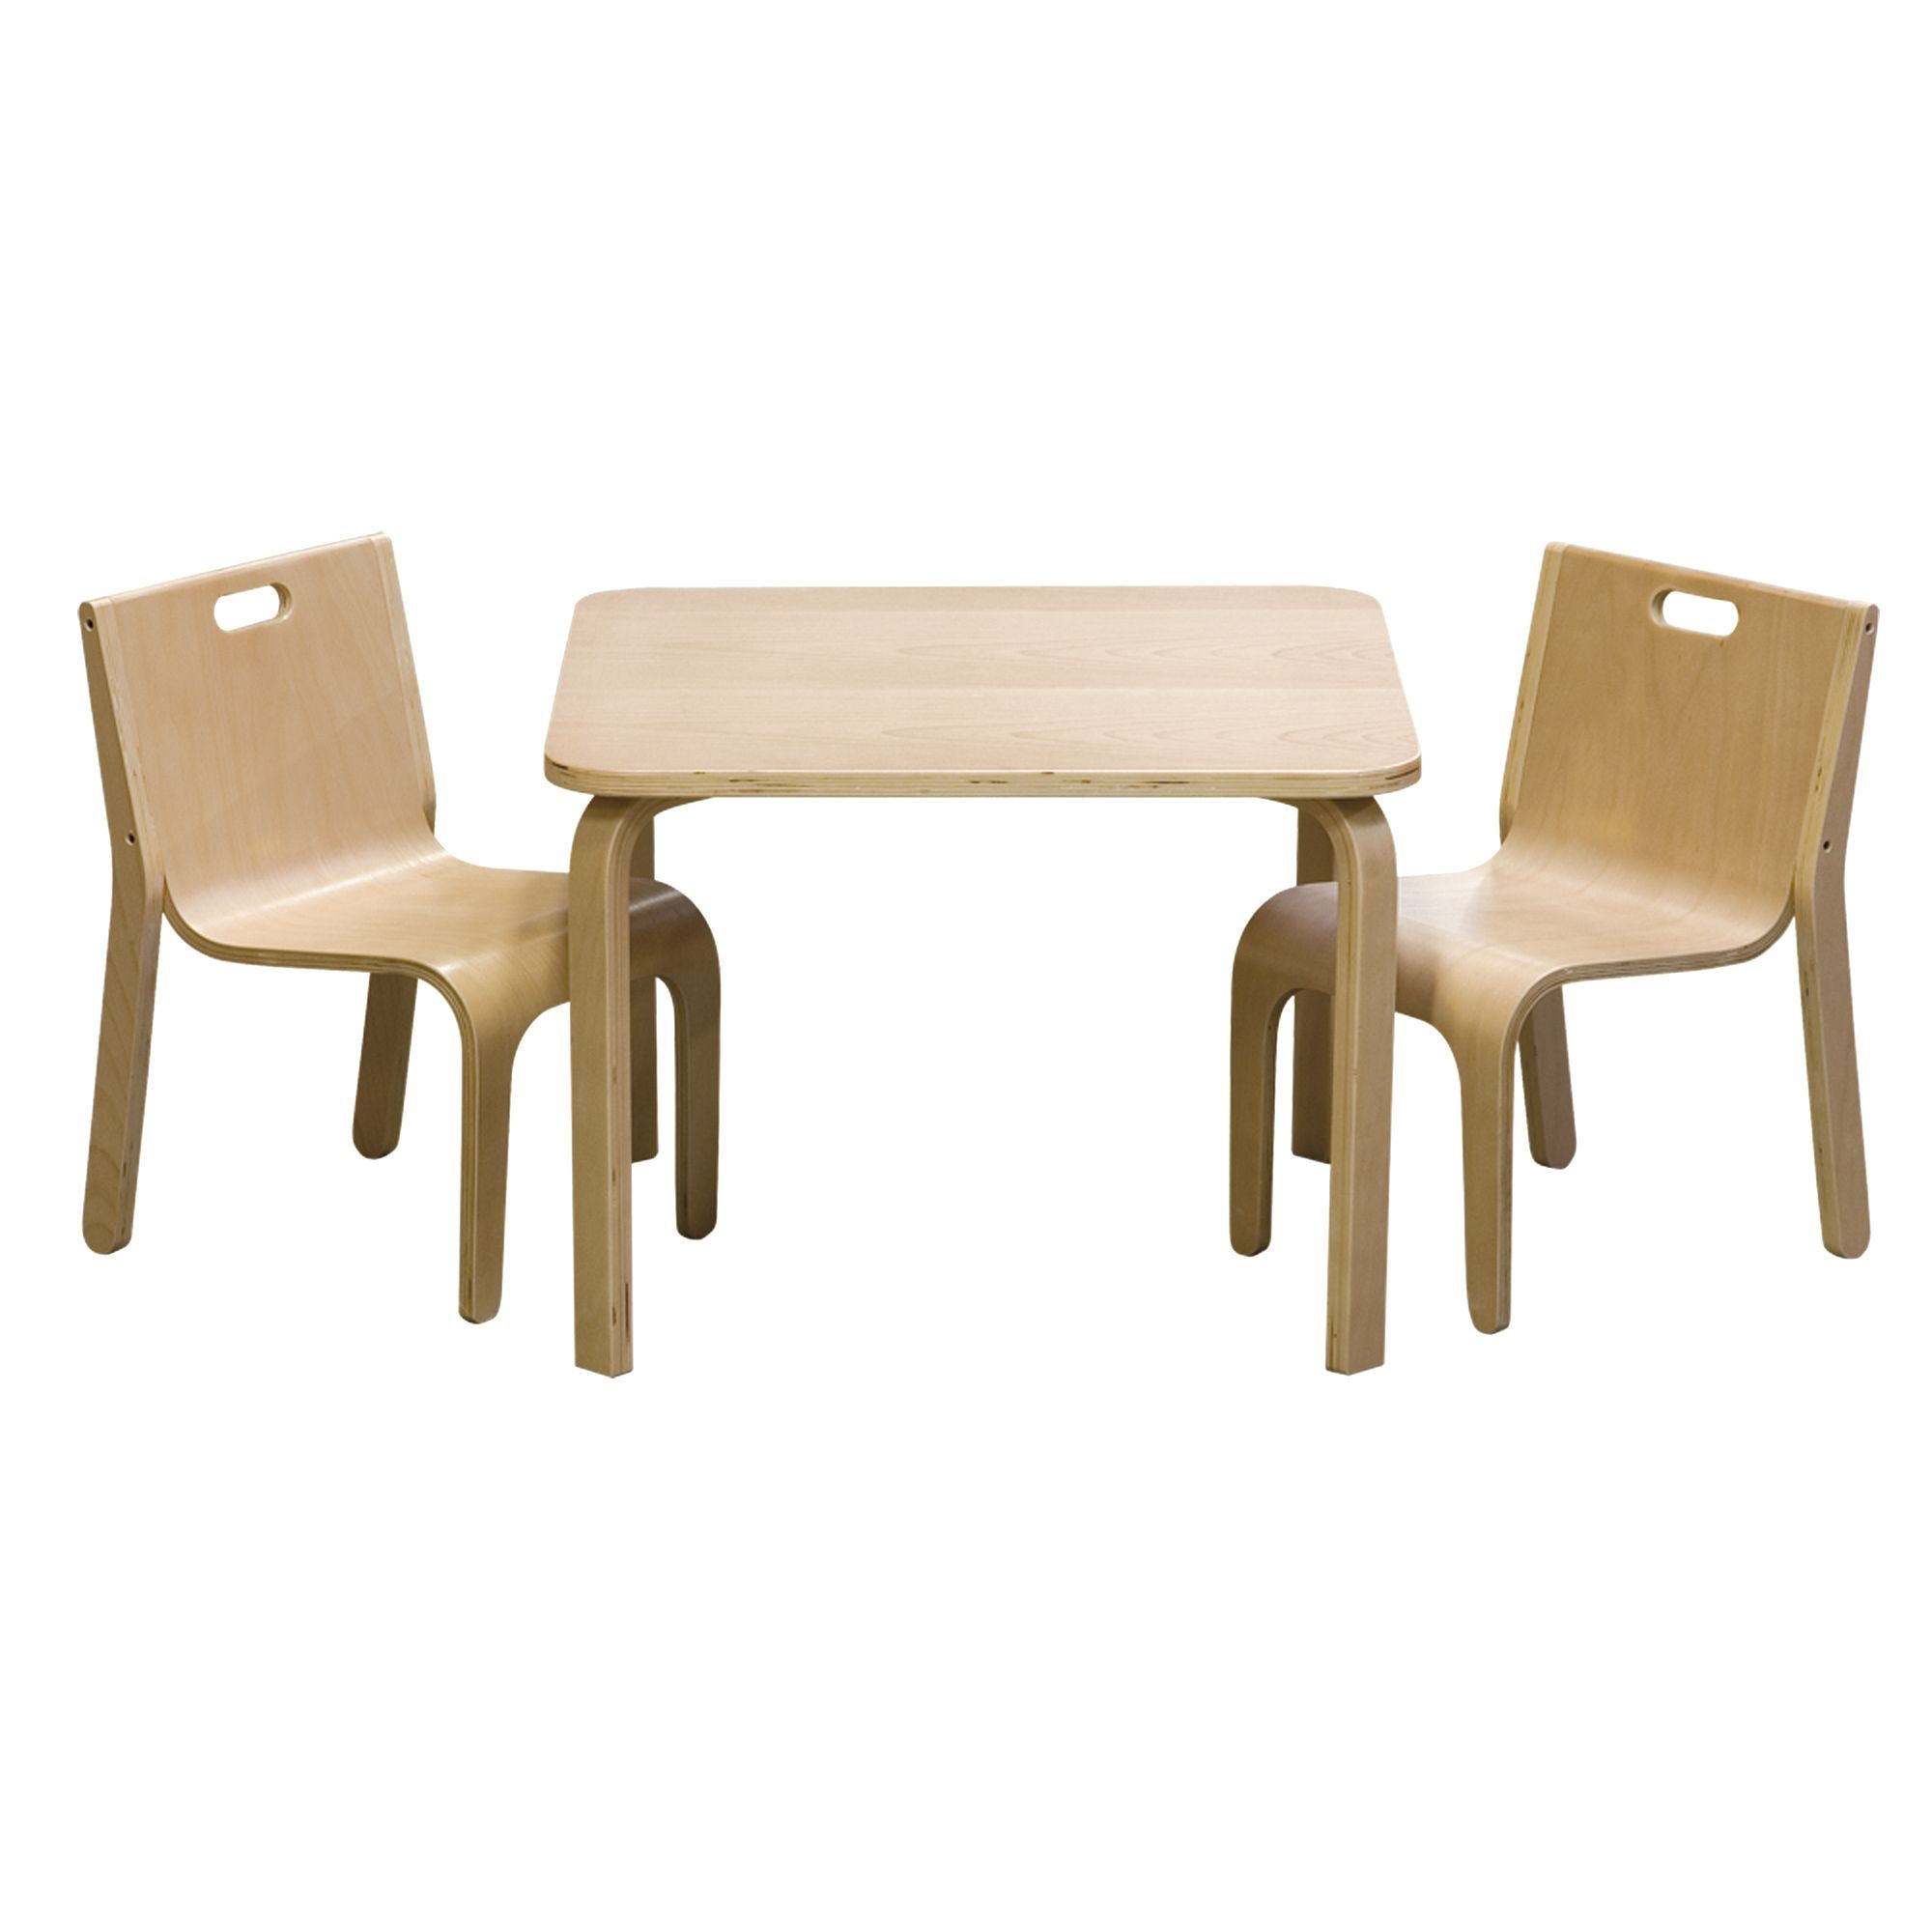 Chaise Design Enfant Set Table Et 2 Chaises Au Design Scandinave Pour Enfant Naturel